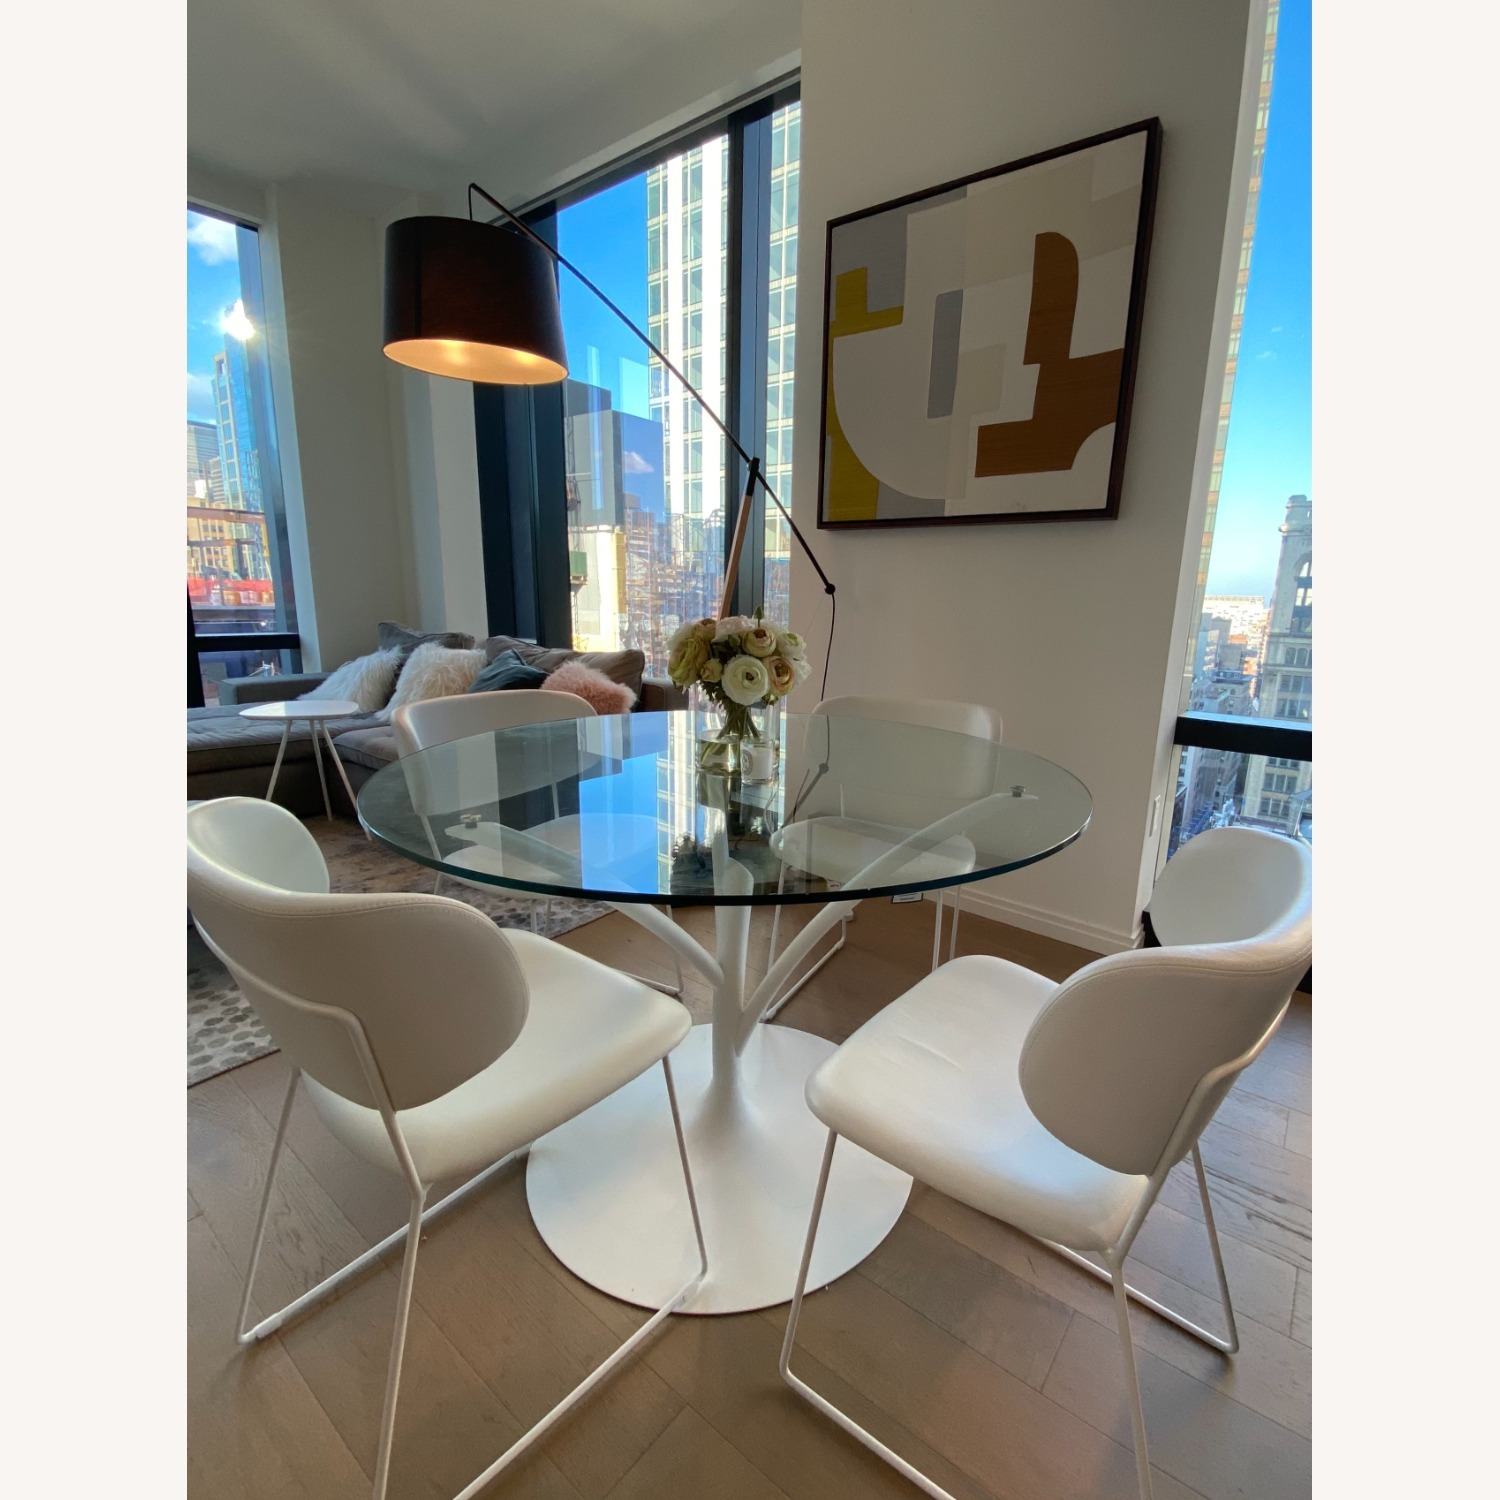 Calligaris Acacia Round Glass Table + 4 Claire Chairs - image-1